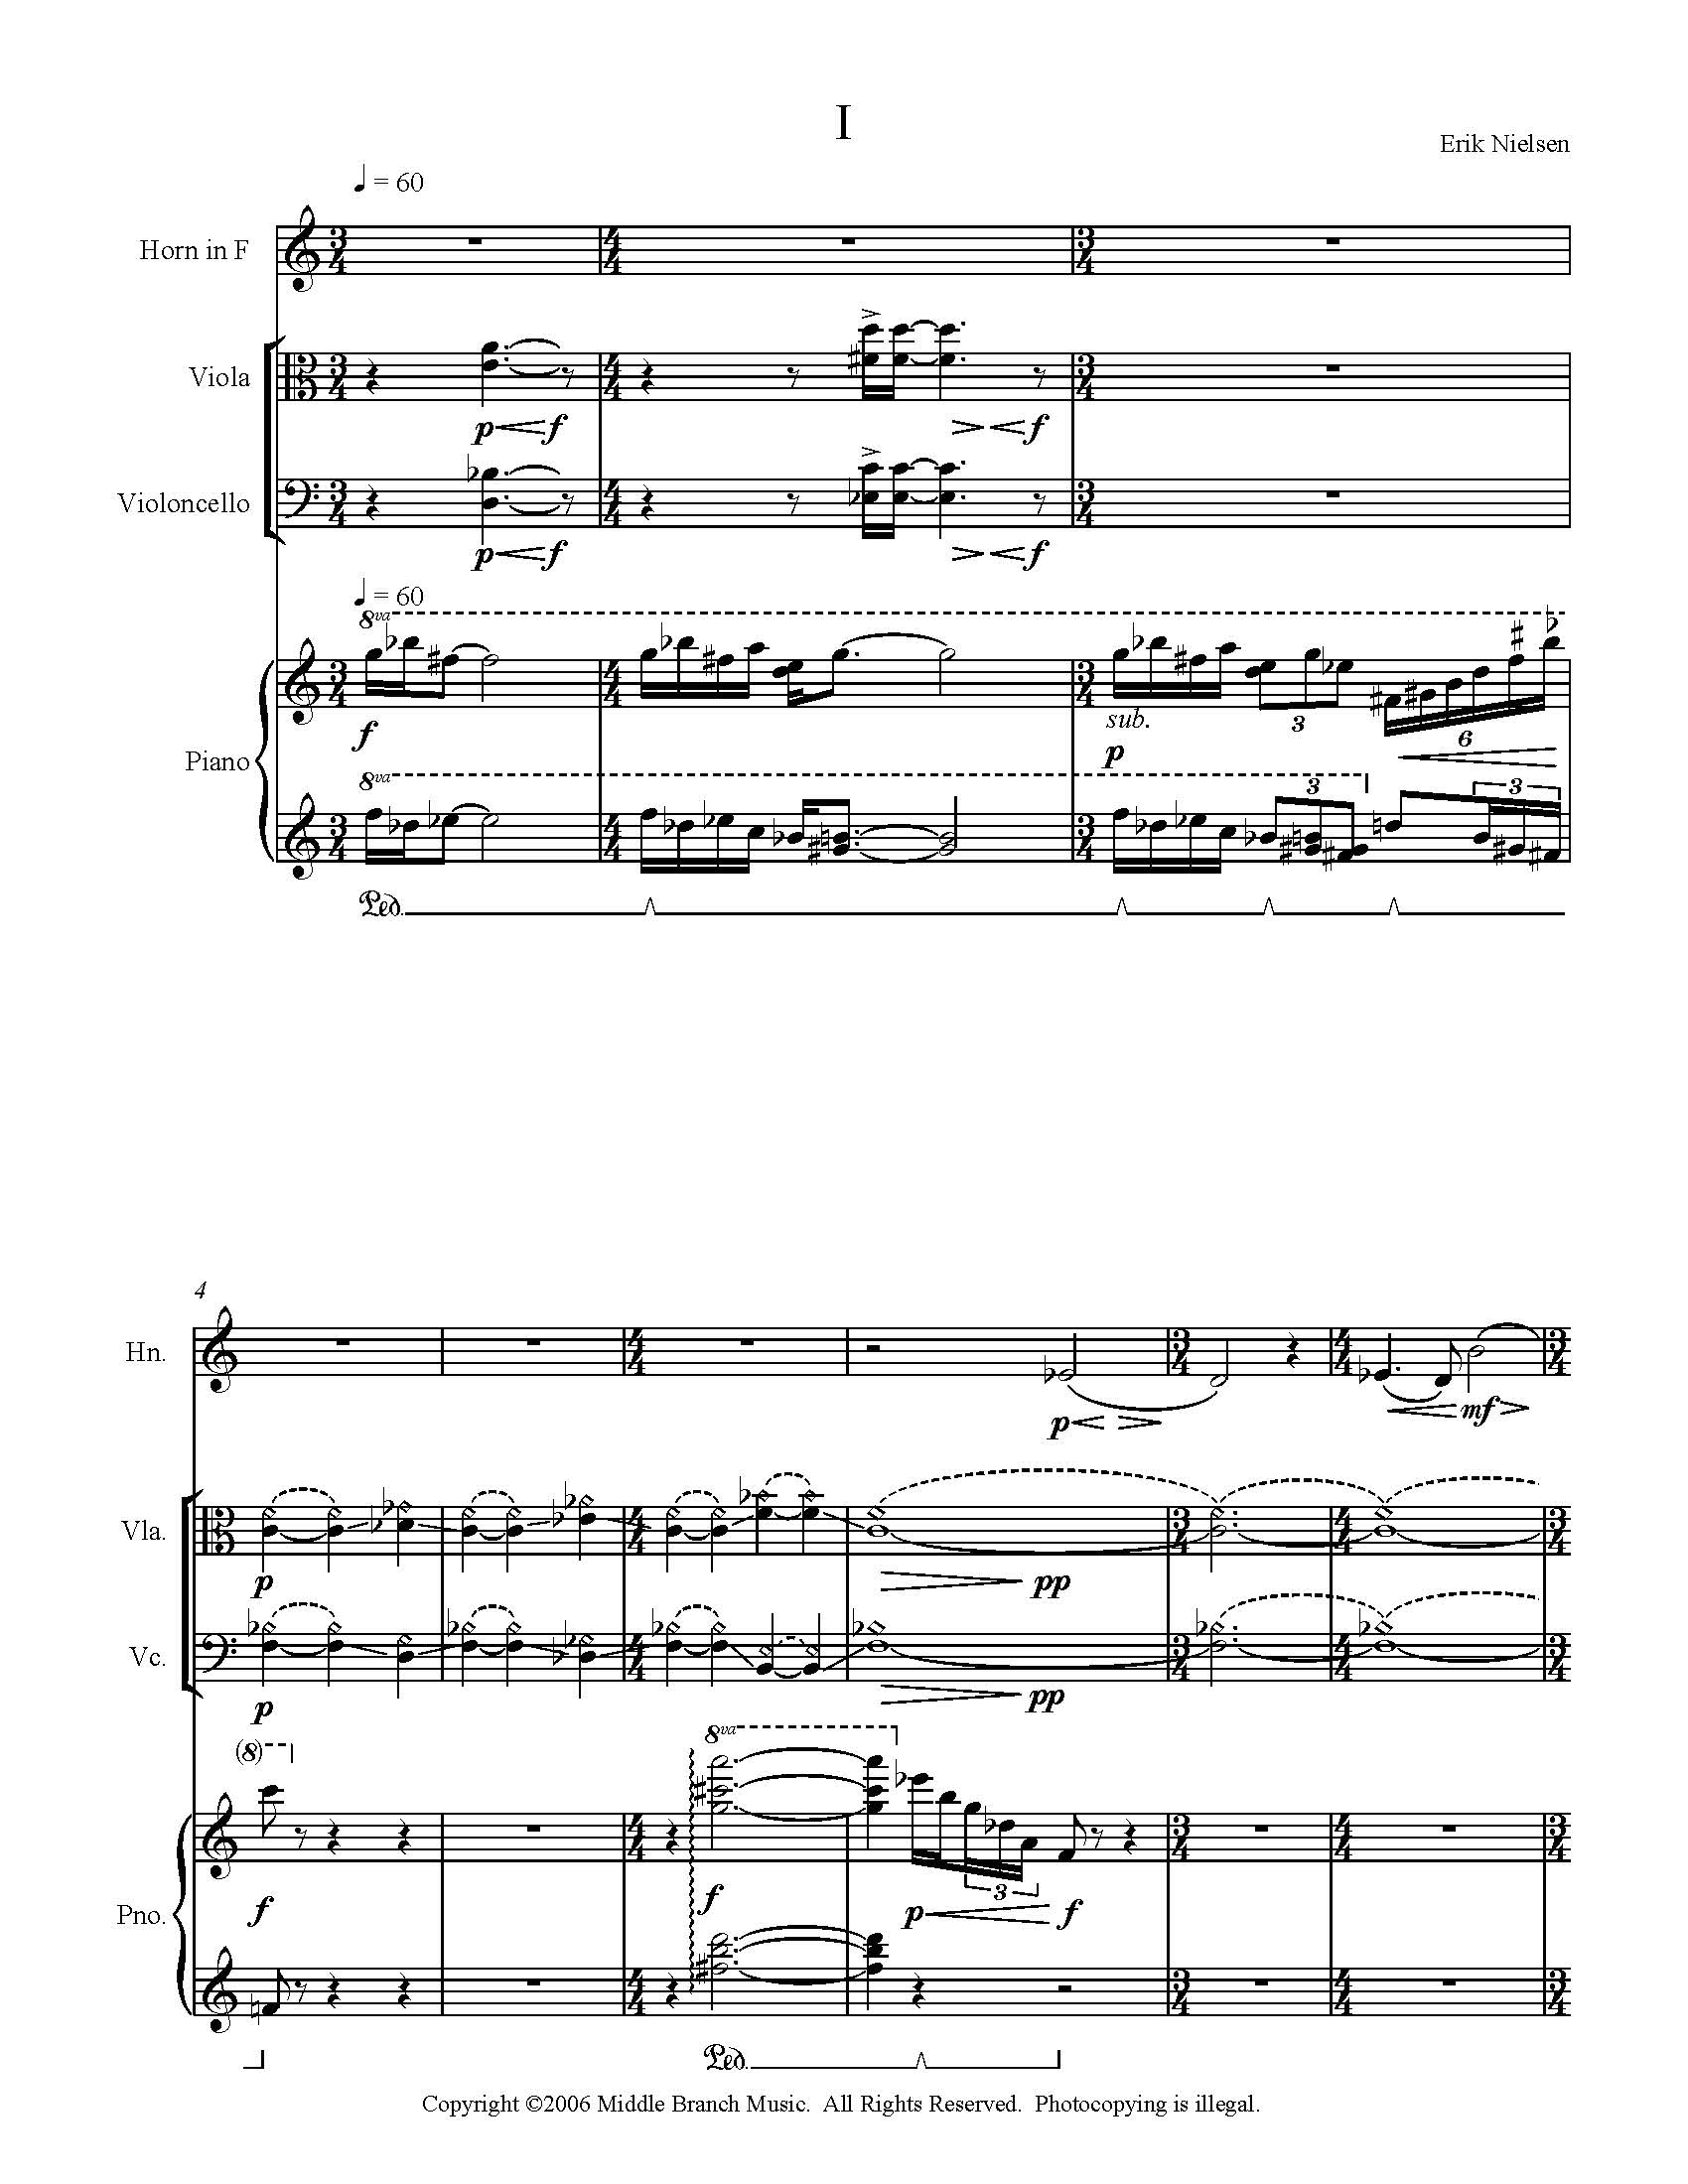 Quartet for Horn, Viola, Violoncello and Piano